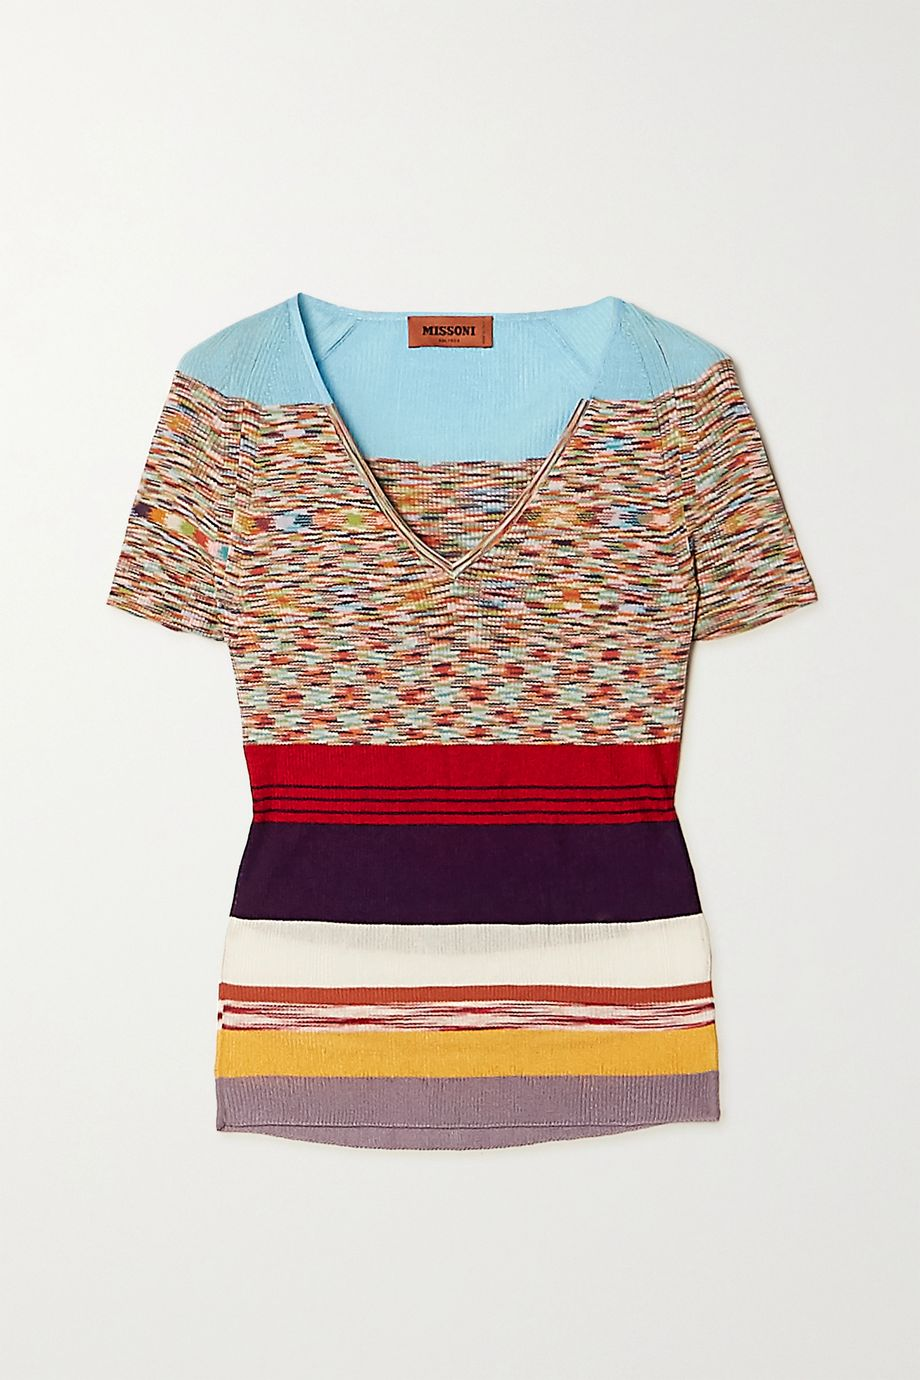 Missoni Striped crochet-knit cotton-blend top